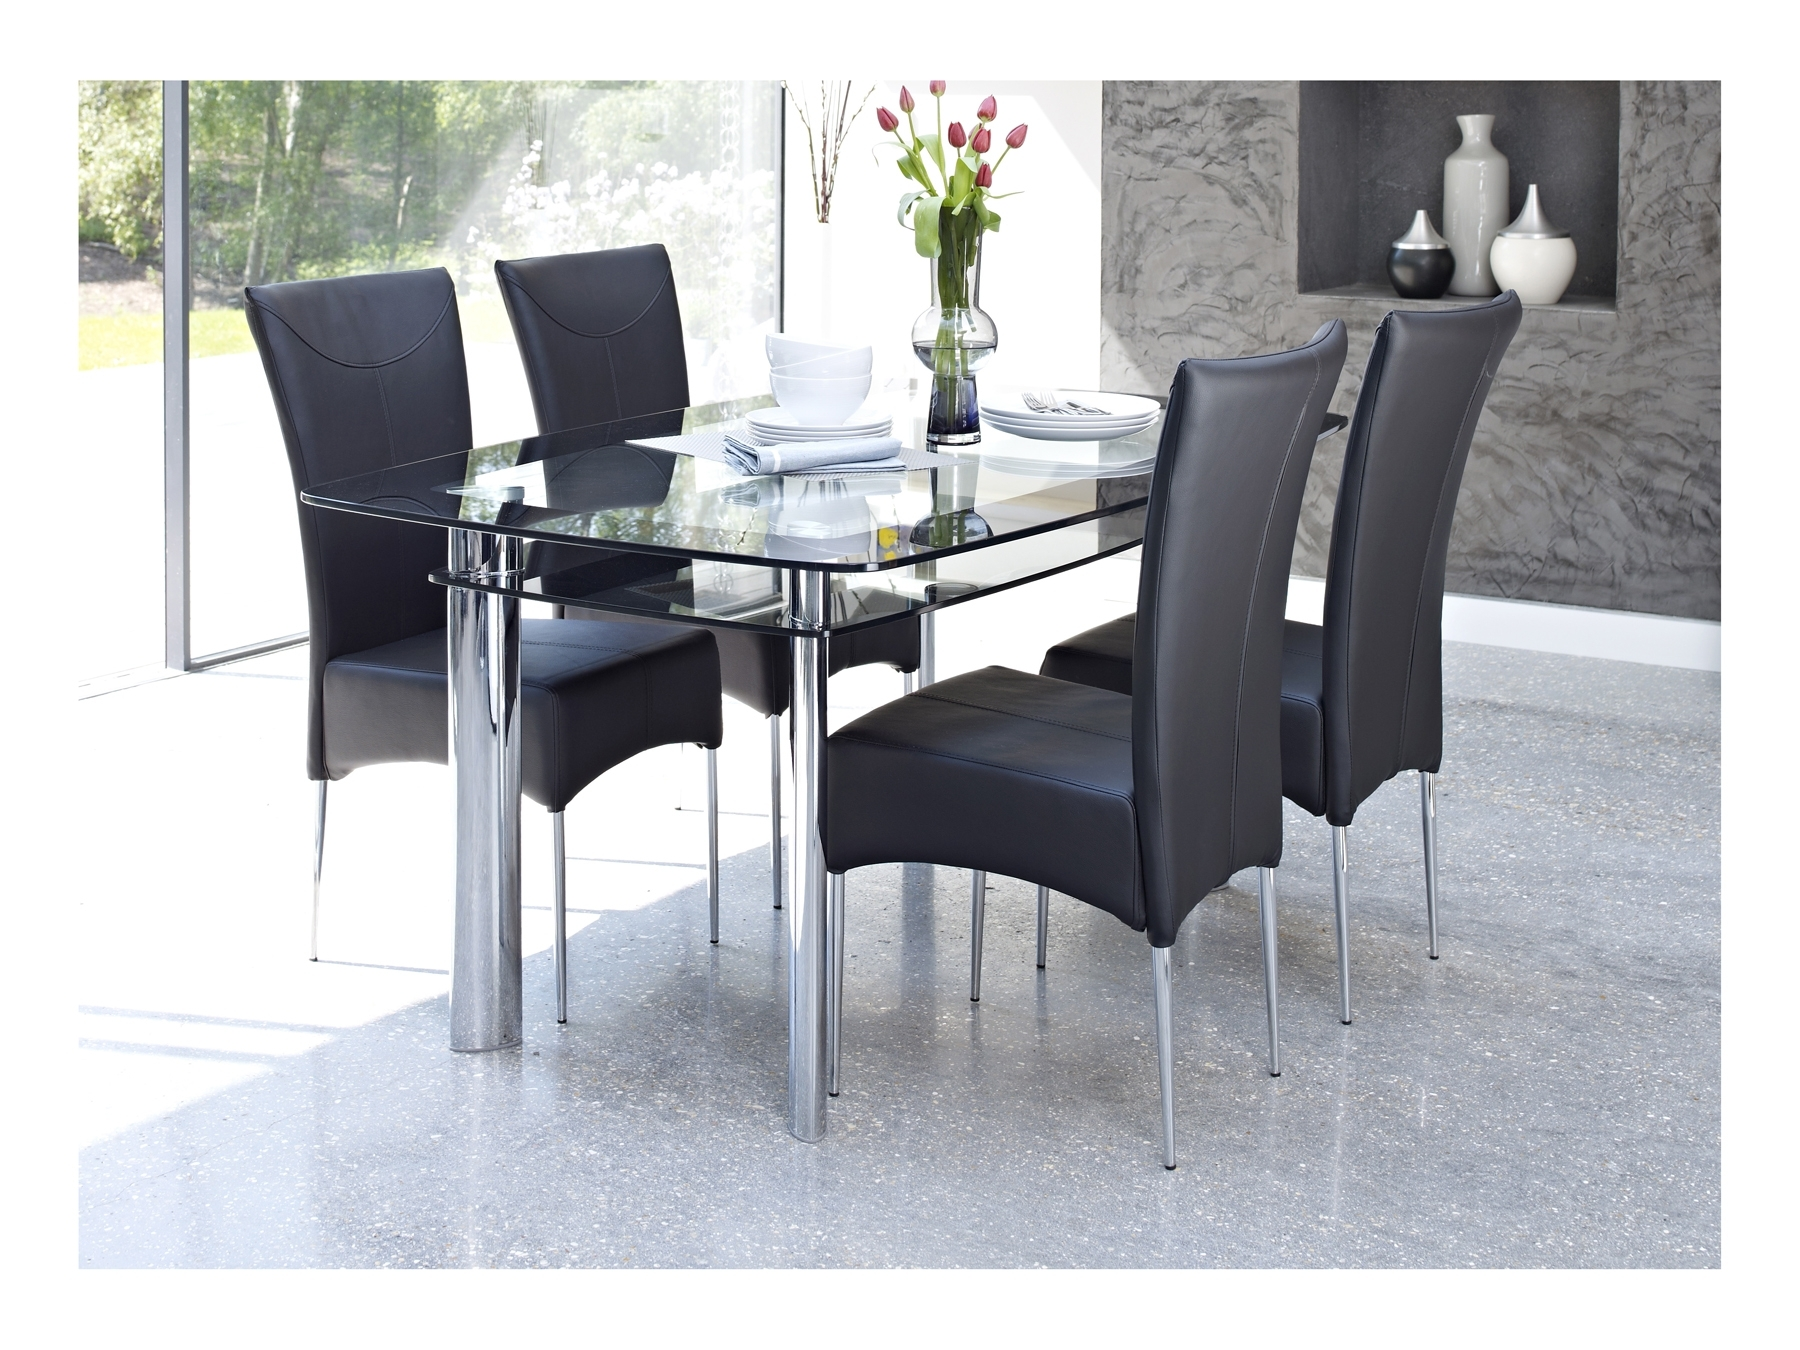 Mother Ideas: Bradford Dining Room Furniture Collection, Macys With Best And Newest Bradford Dining Tables (View 6 of 20)